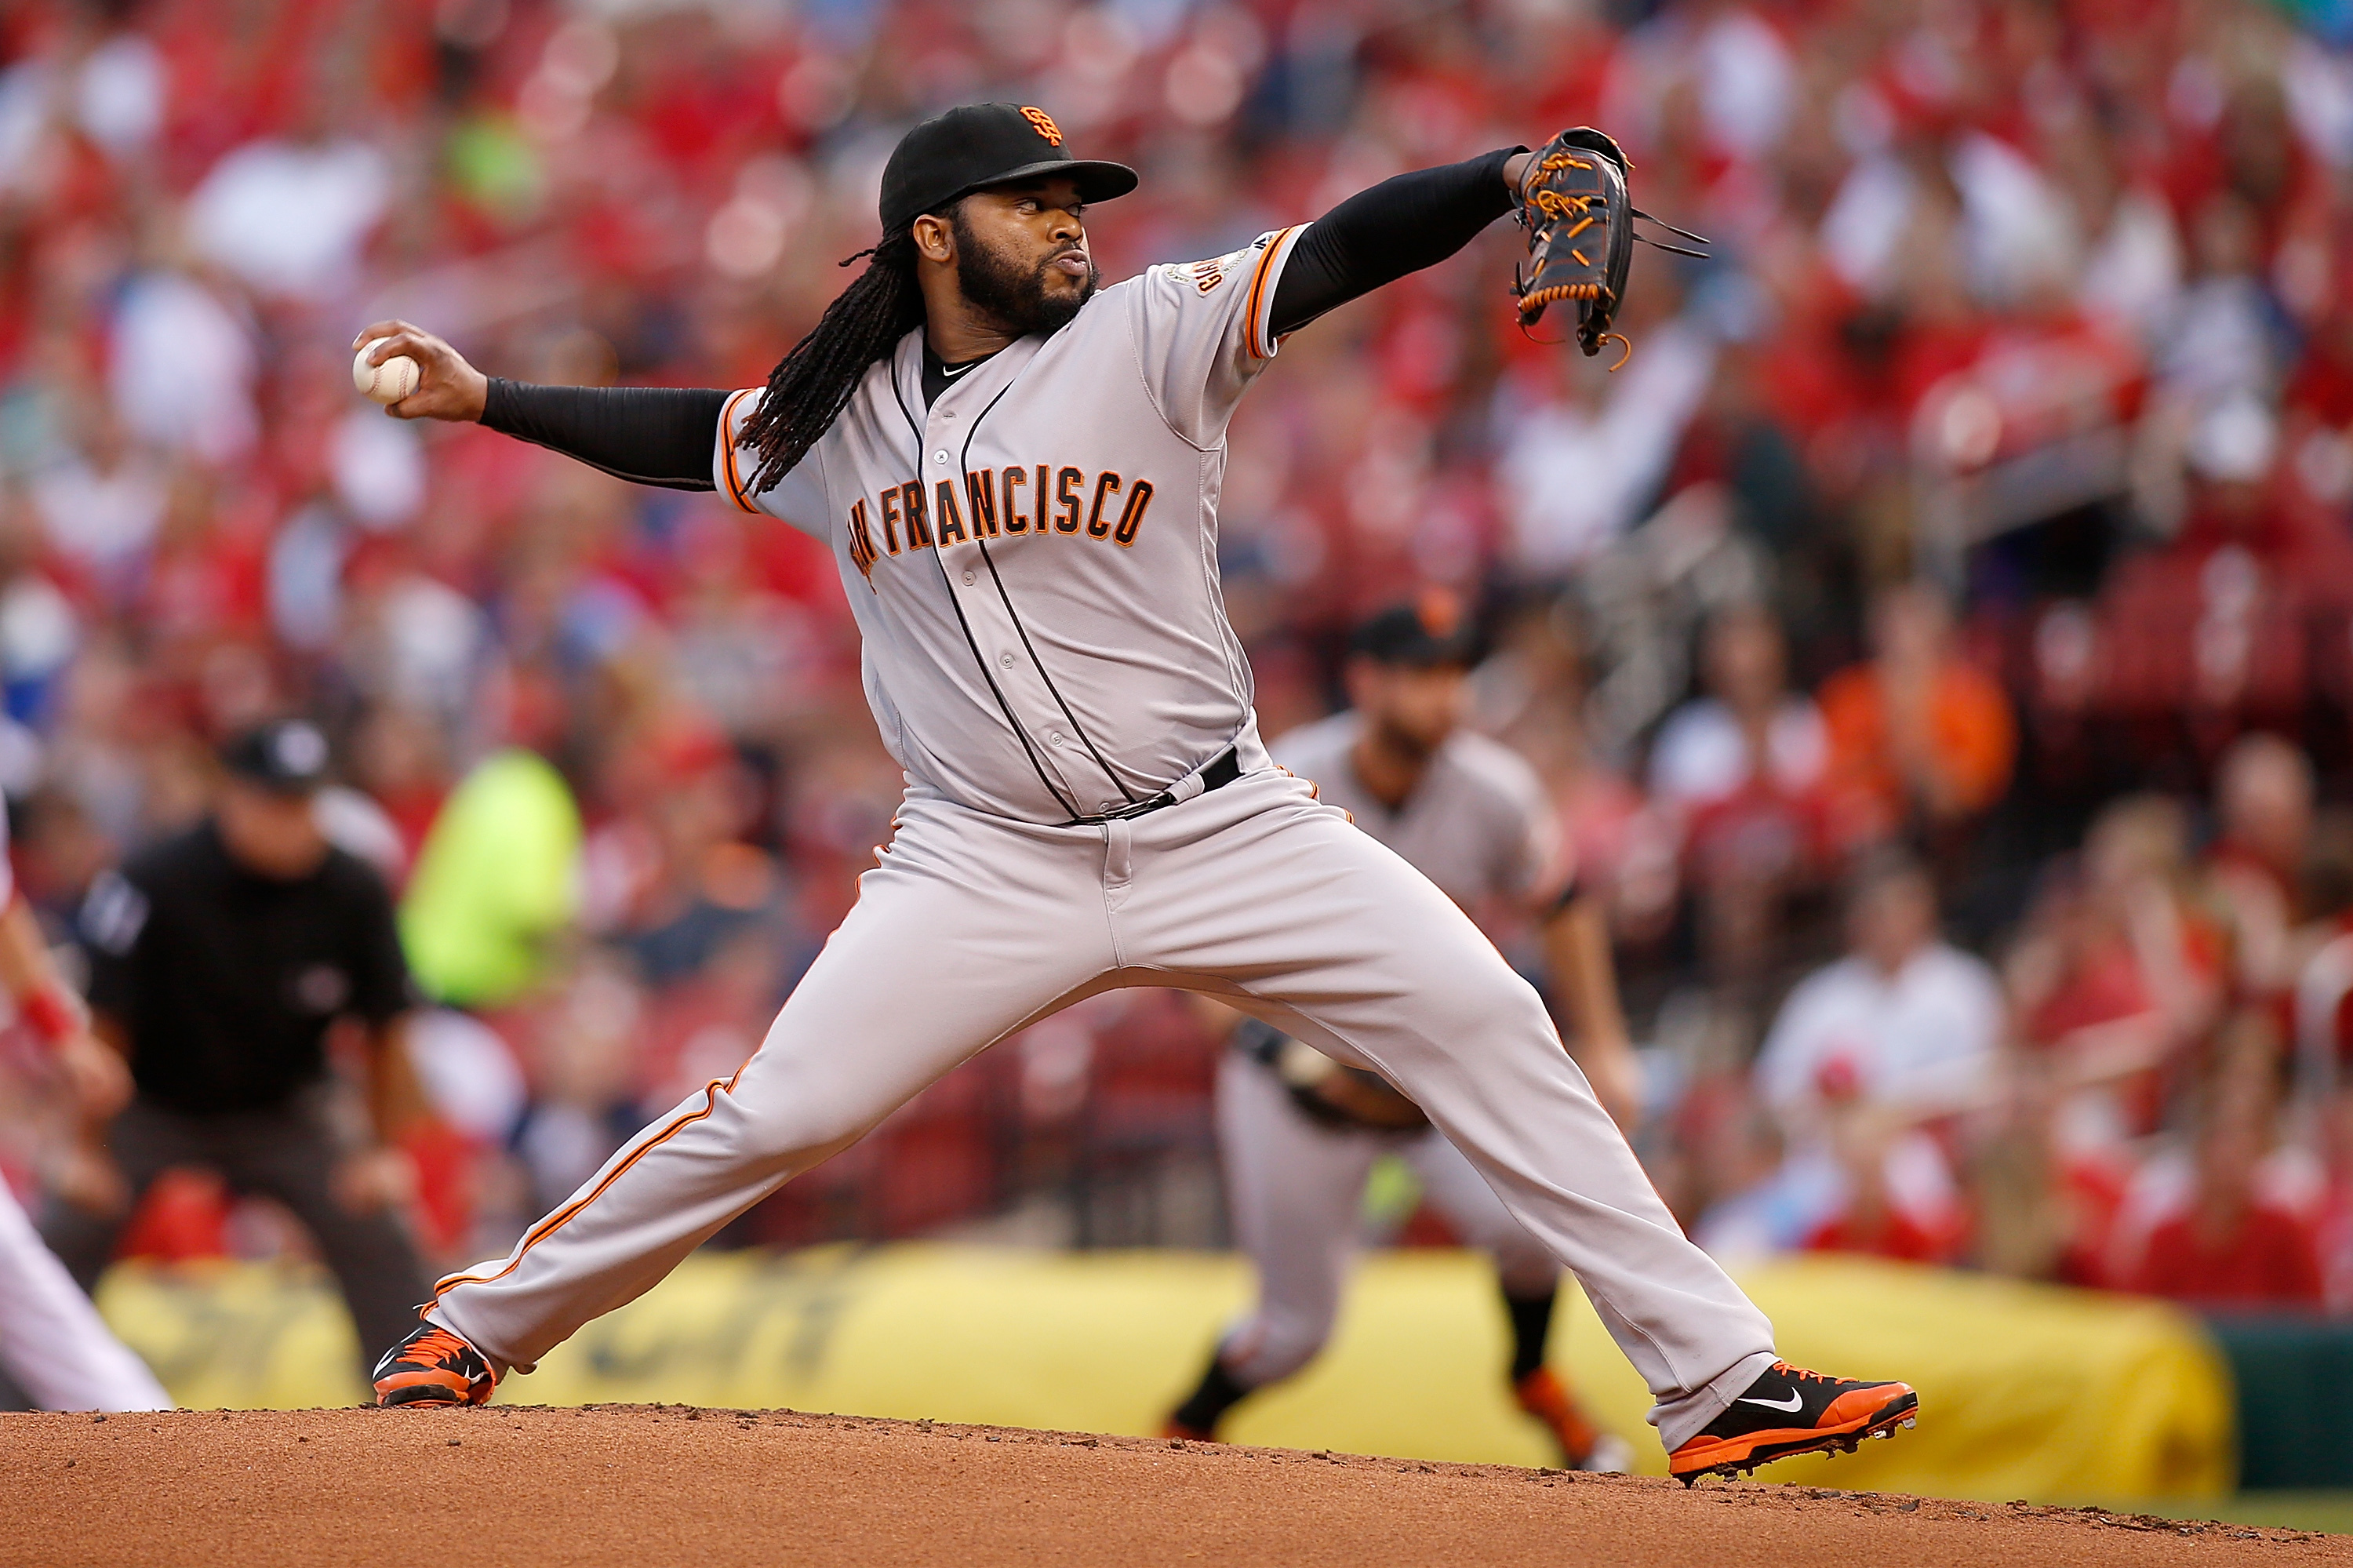 San Francisco Giants starting pitcher Johnny Cueto throws against the St. Louis Cardinals during the first inning of a baseball game Friday, June 3, 2016, in St. Louis. (AP Photo/Scott Kane)